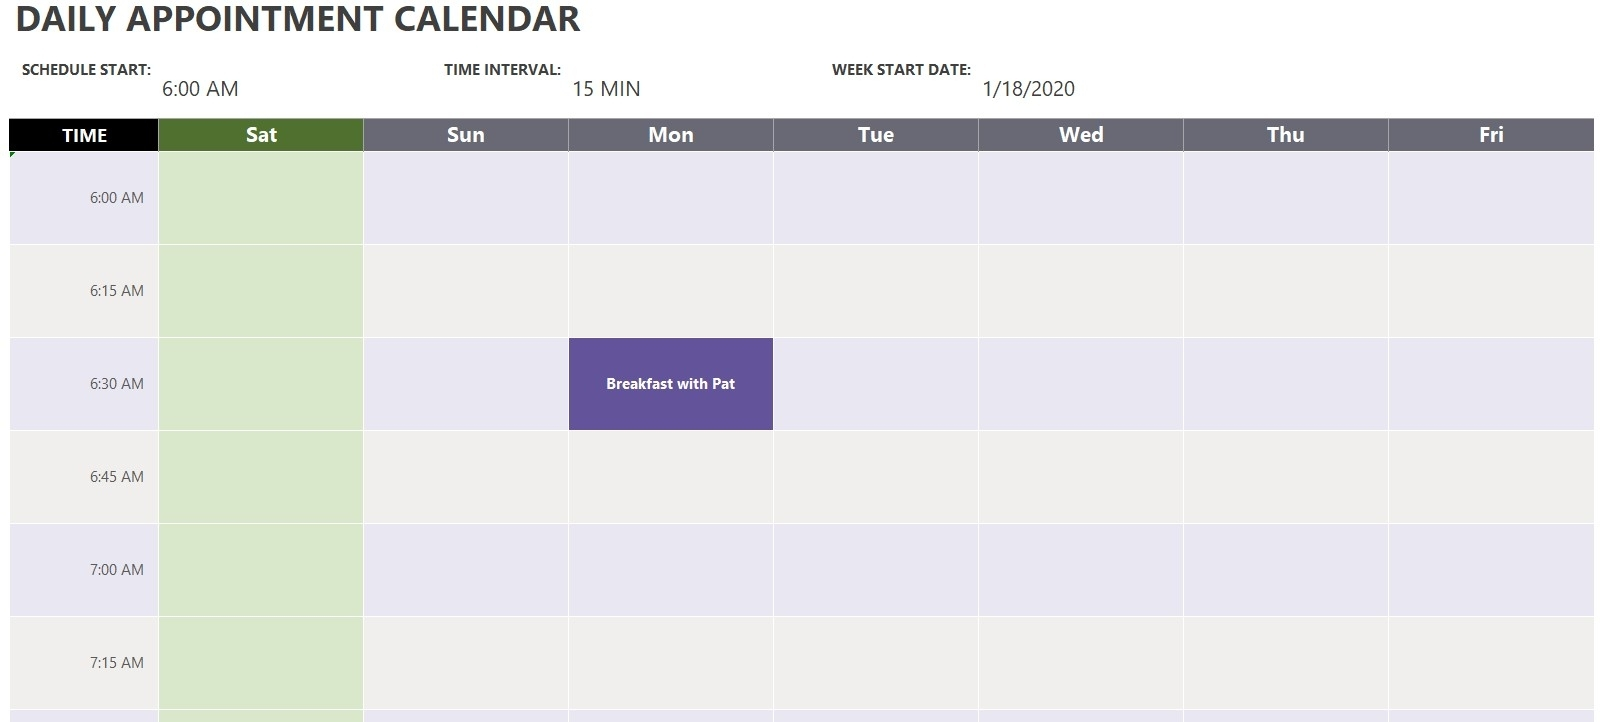 Daily Appointment Calendar Template | Excel Templates